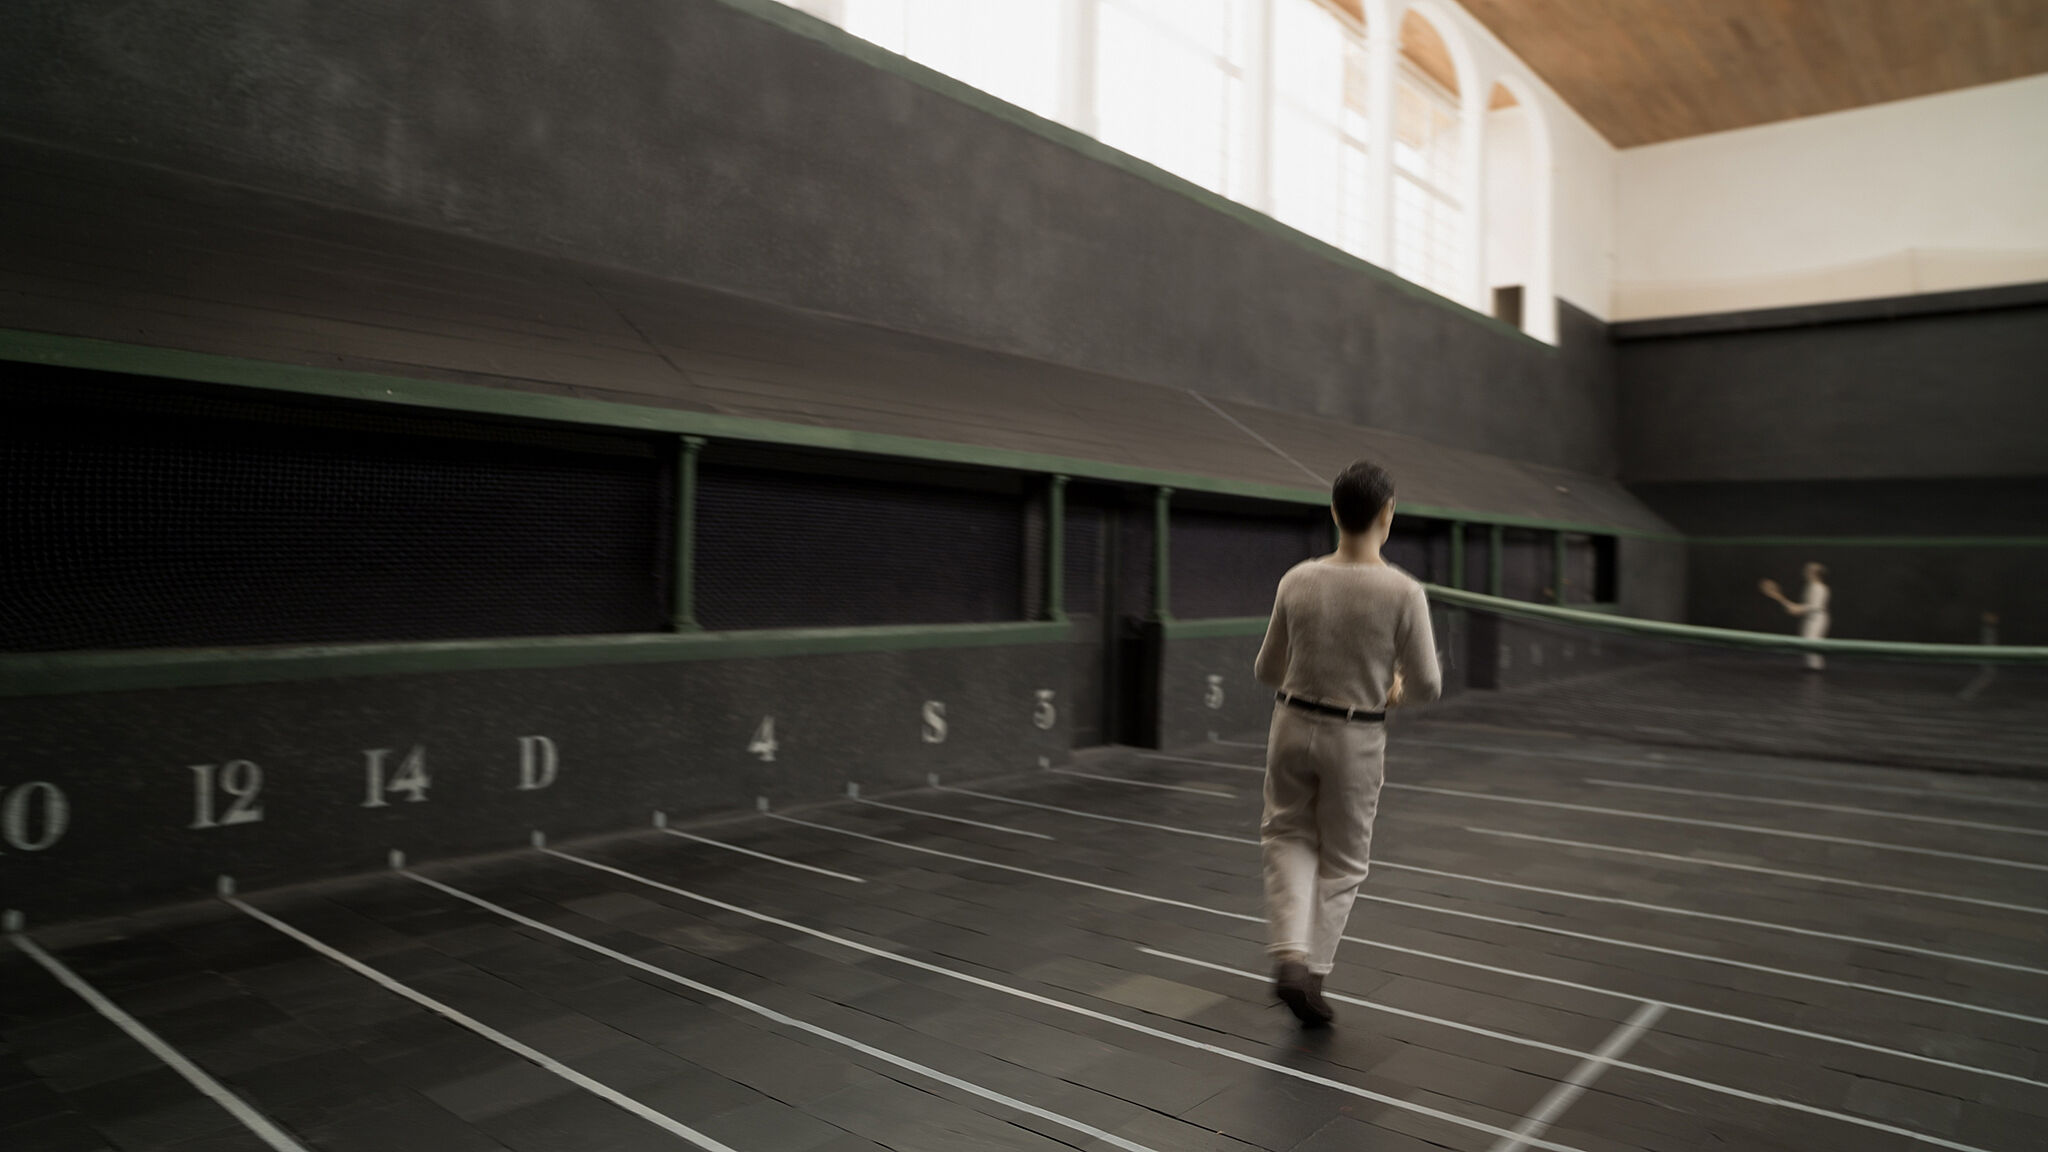 A still from an animation of a man playing tennis.